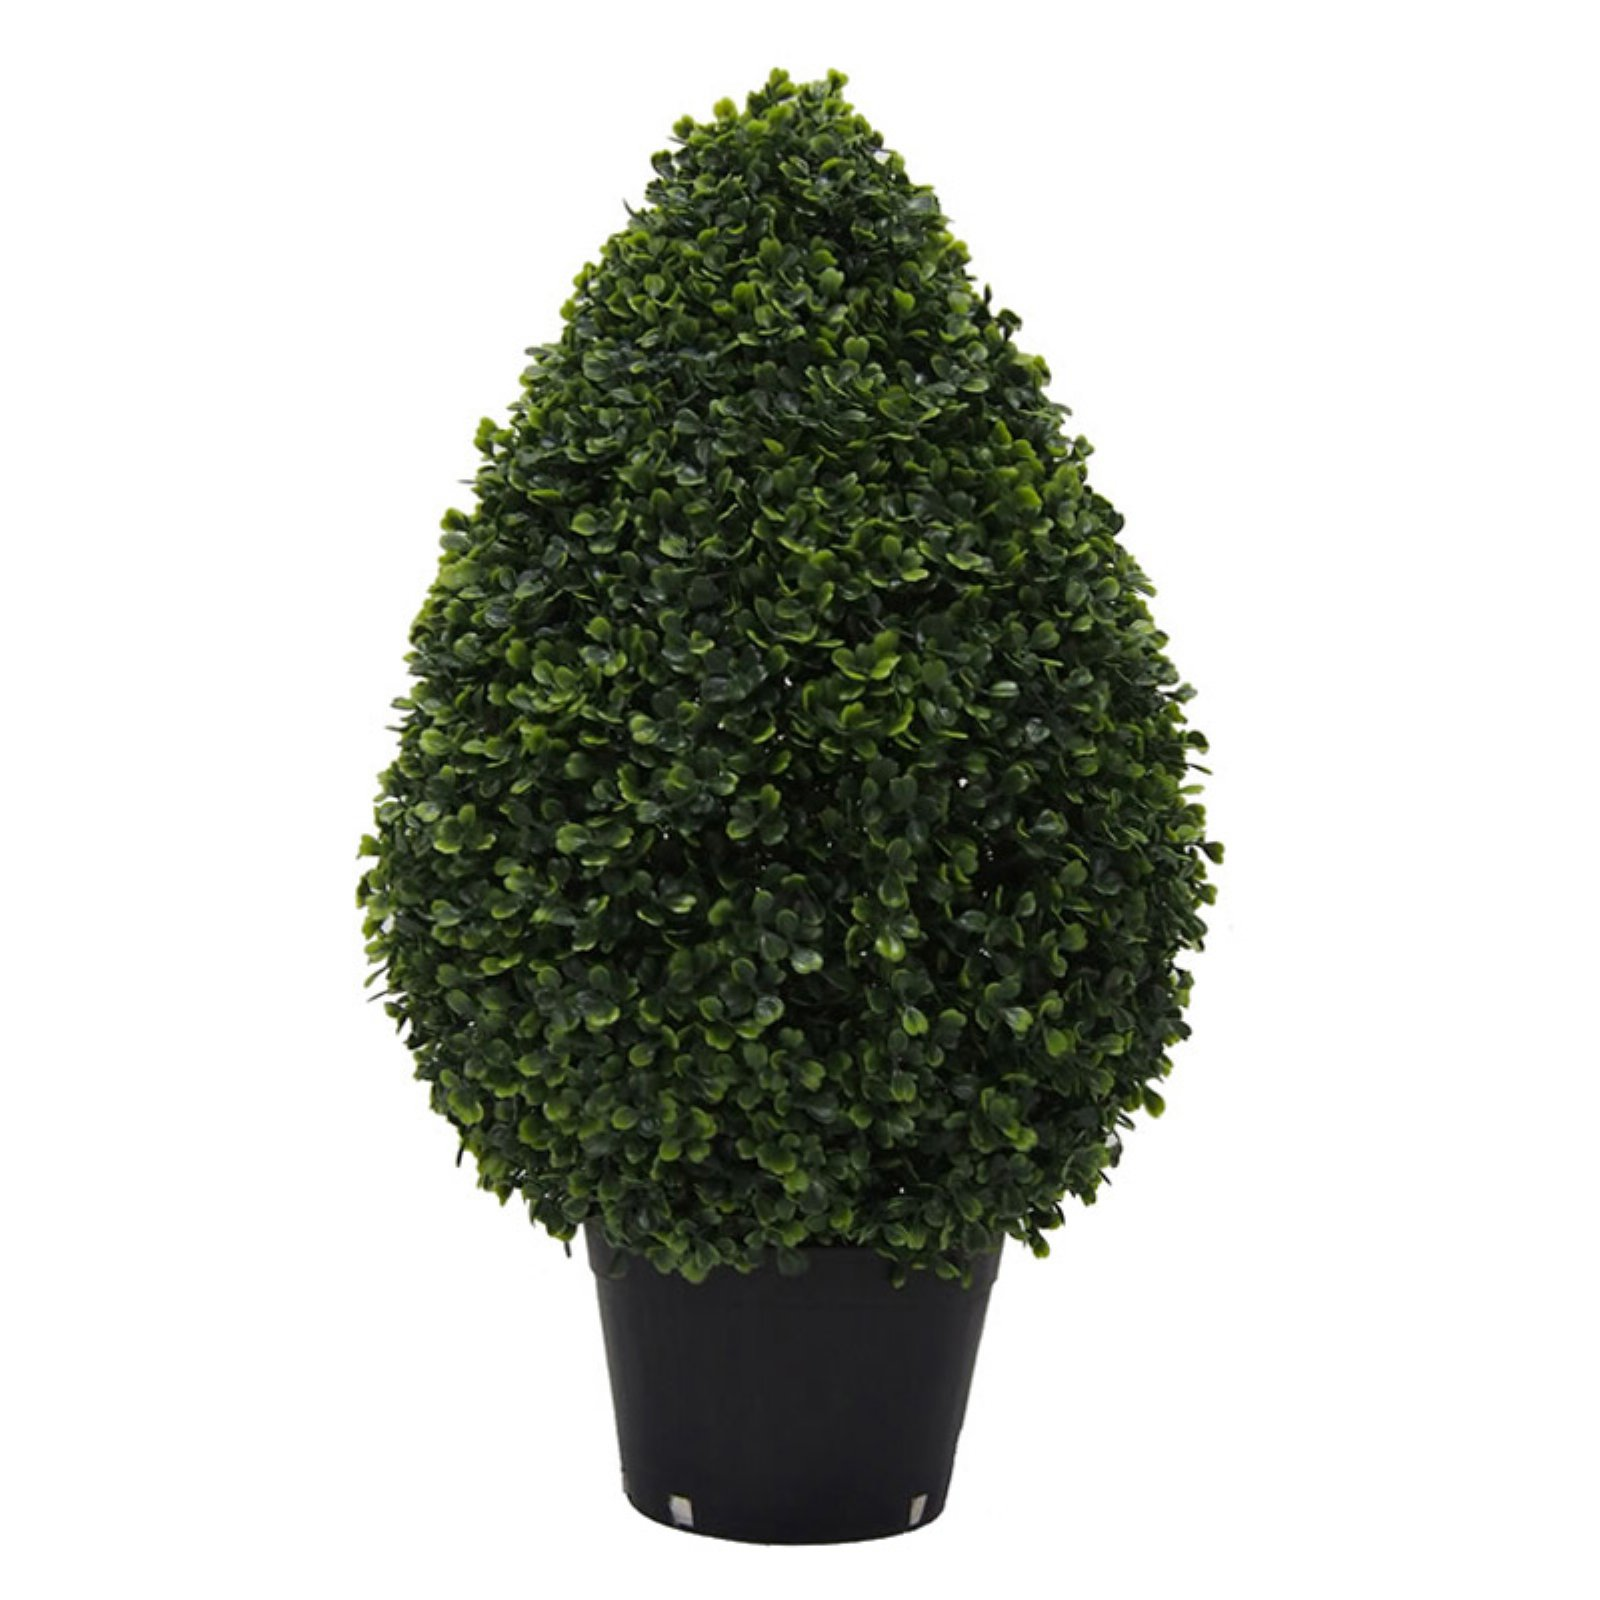 "Vickerman 24"" x 15"" Boxwood Teardrop Shaped Bush in a Black Planters Pot, UV-Resistant"